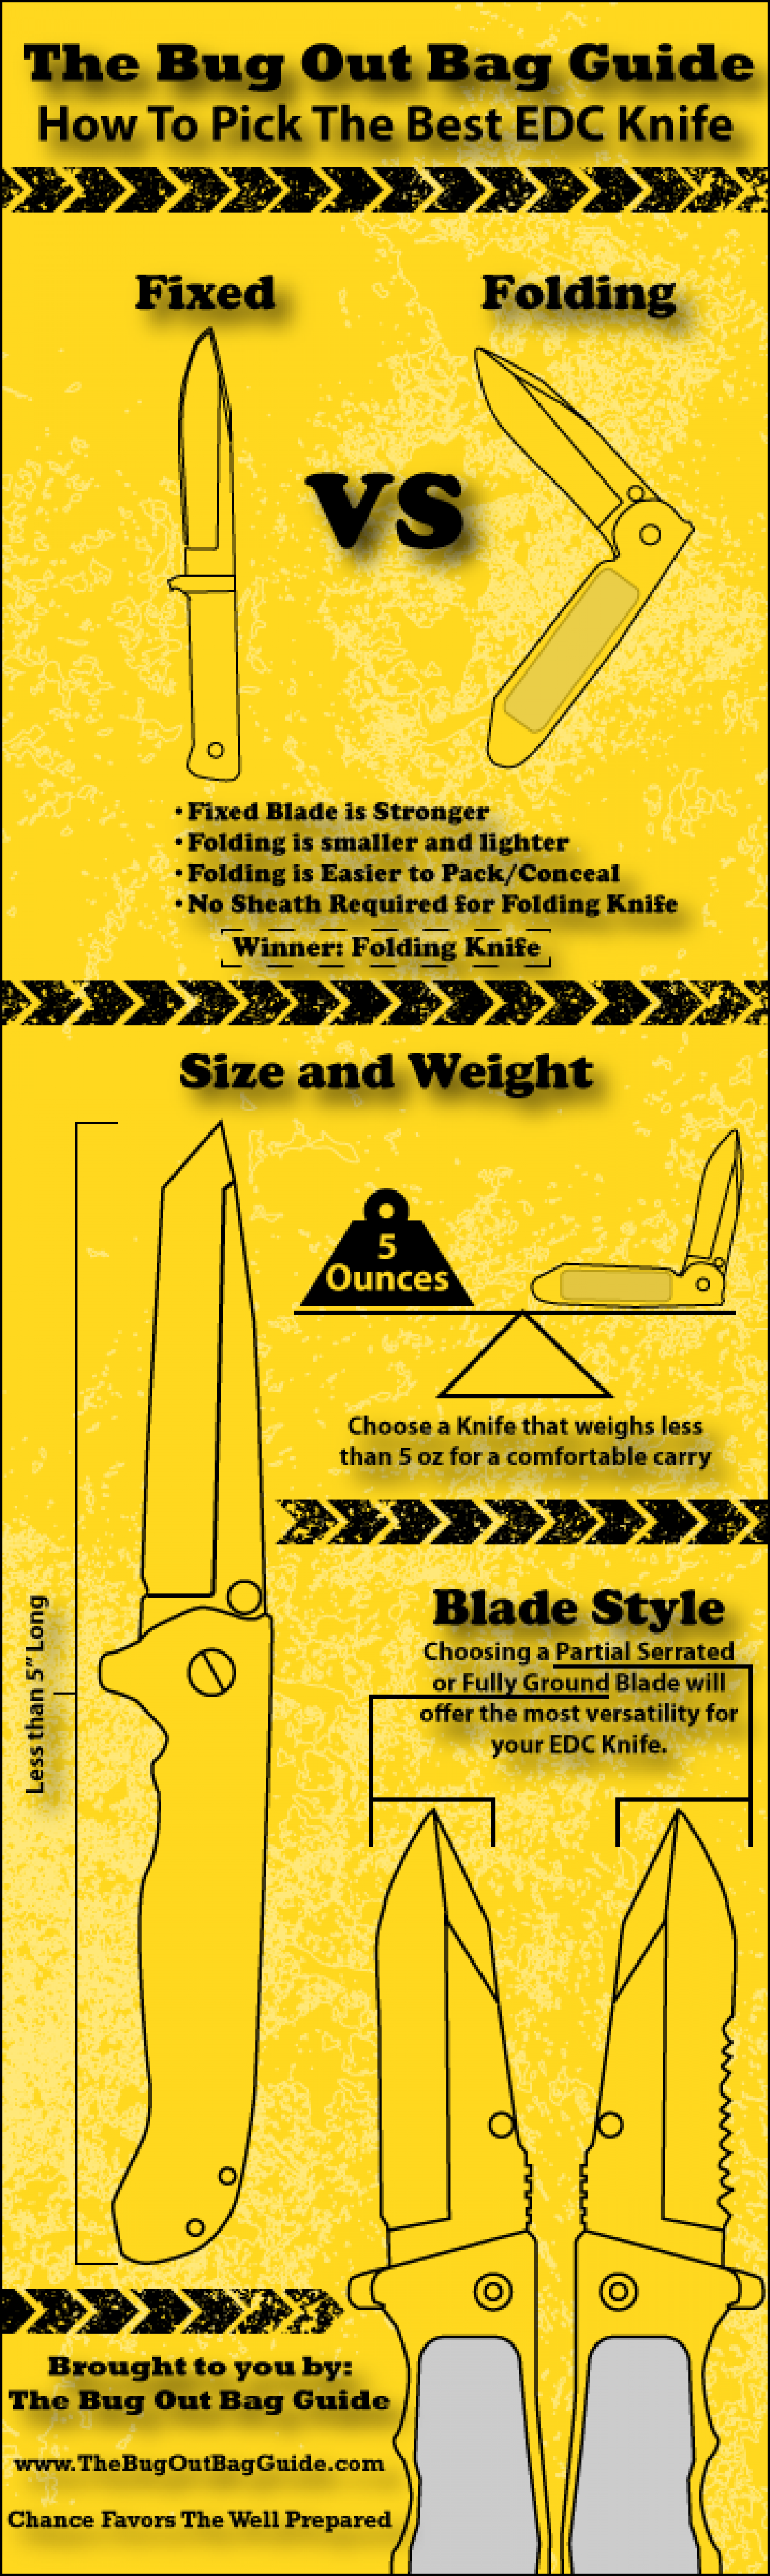 How To Pick The Best EDC Knife Infographic